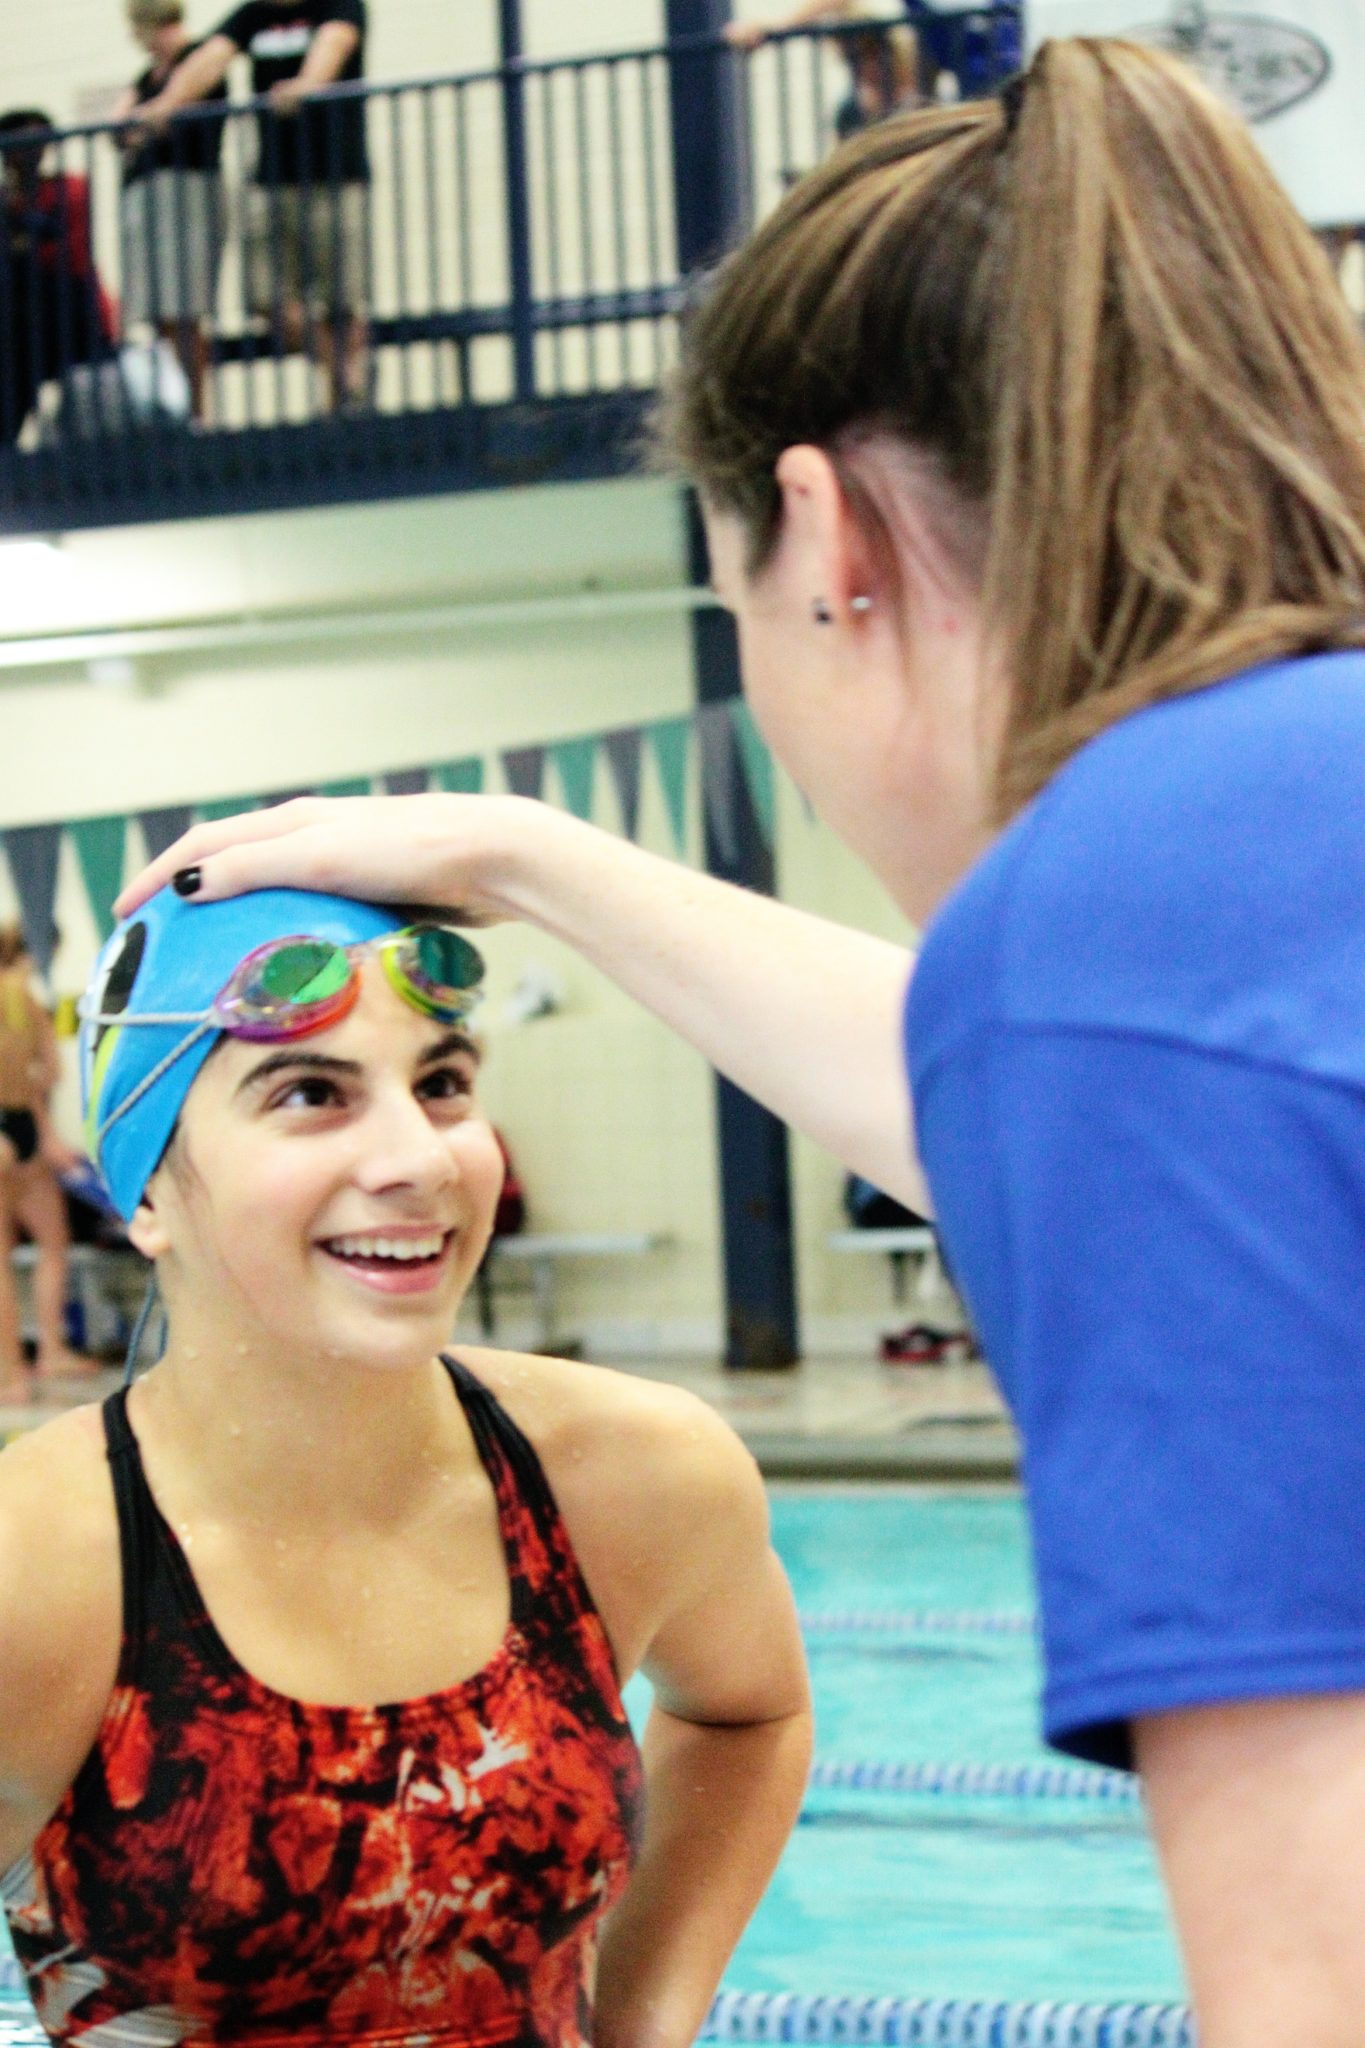 Kara lynn joyce gives feedback to a particpant fitter and faster